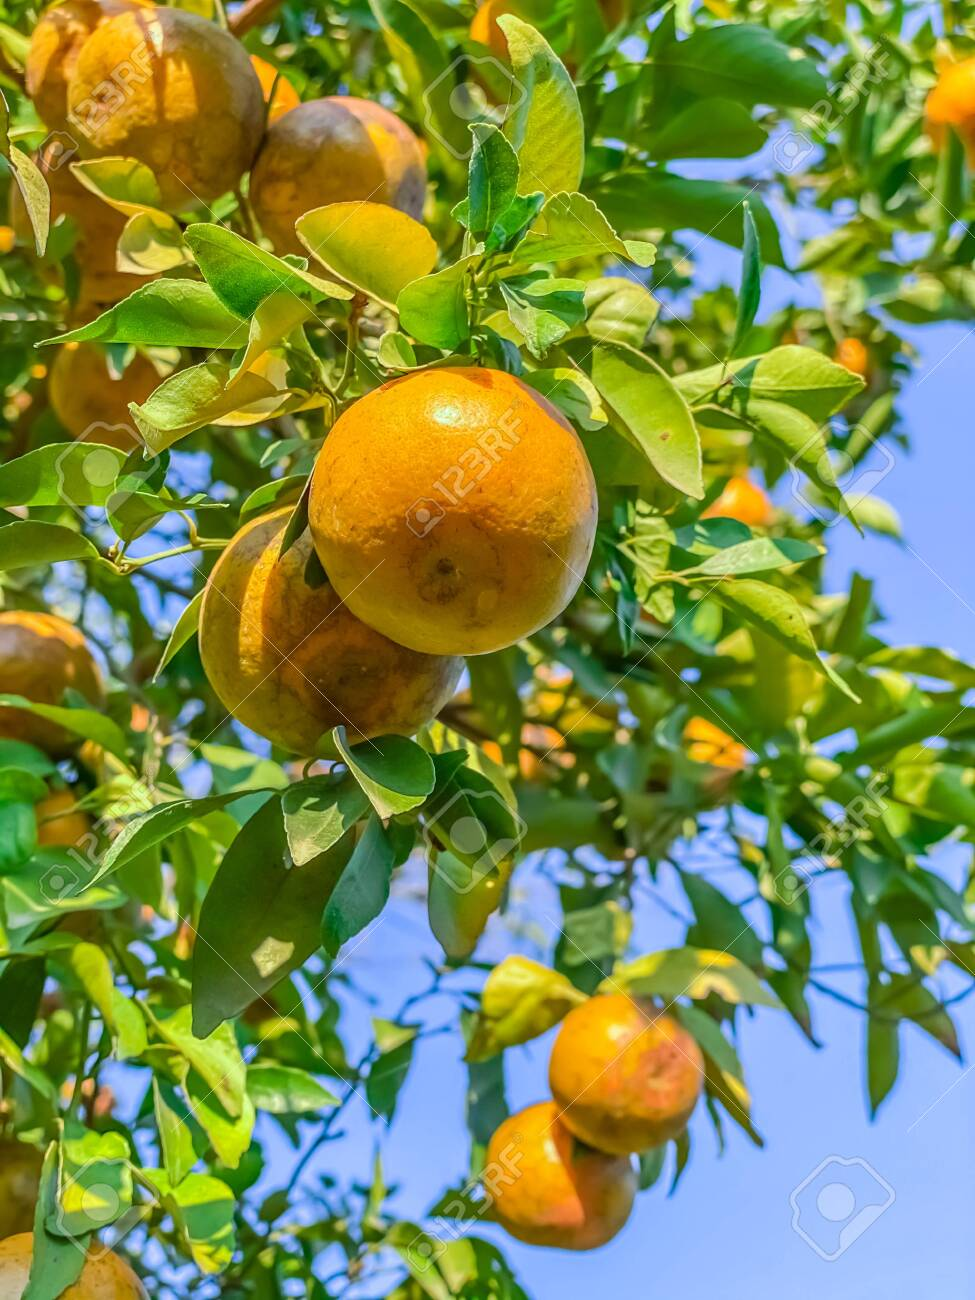 Orange Fruits On Tree Agriculture Scene Nature Wallpaper Backgrounds Stock Photo Picture And Royalty Free Image Image 138579314